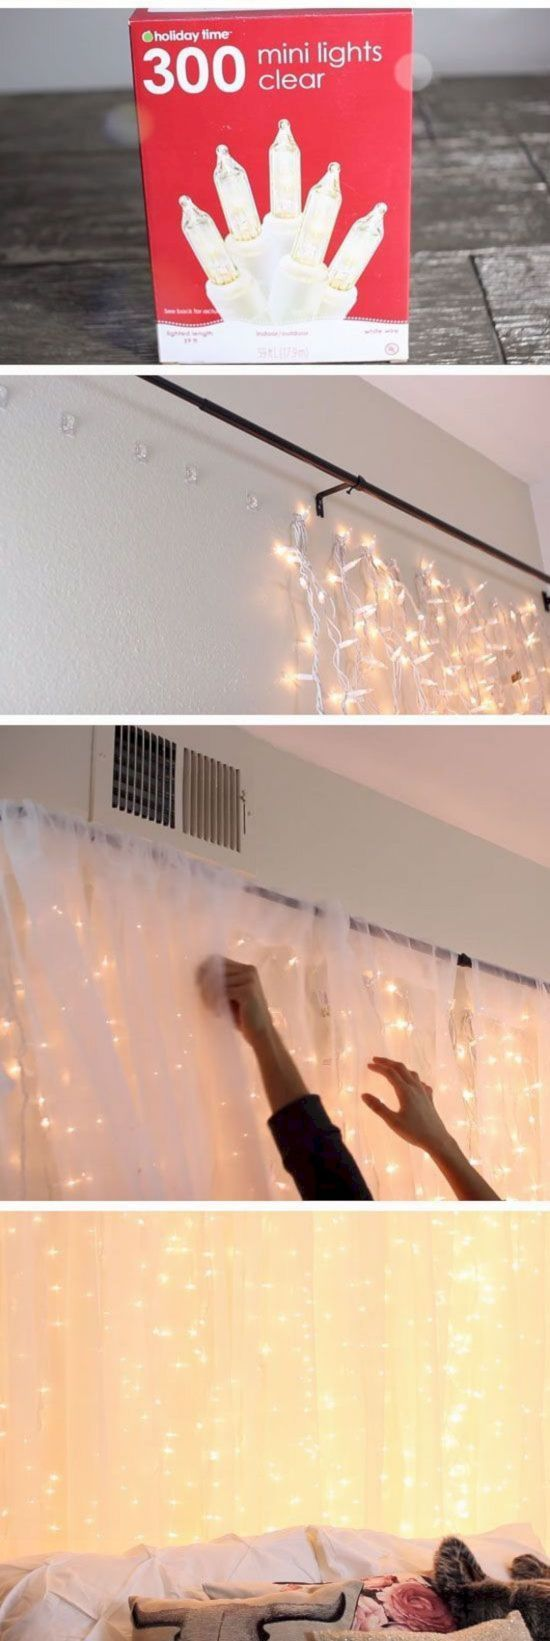 10 Cute DIY Ideas That Will Make Your Home Adorable images